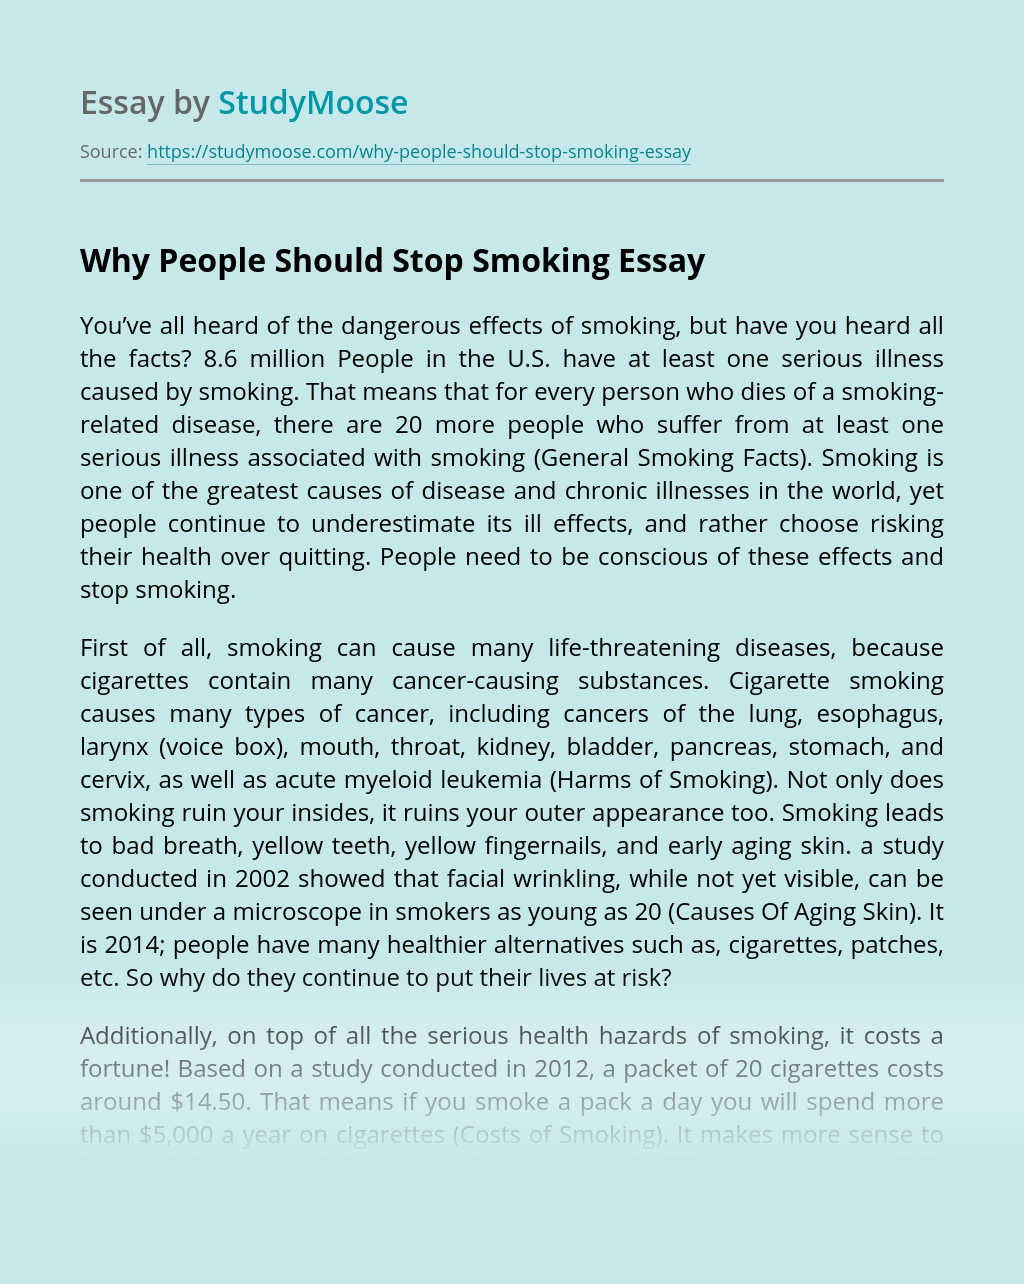 Why People Should Stop Smoking